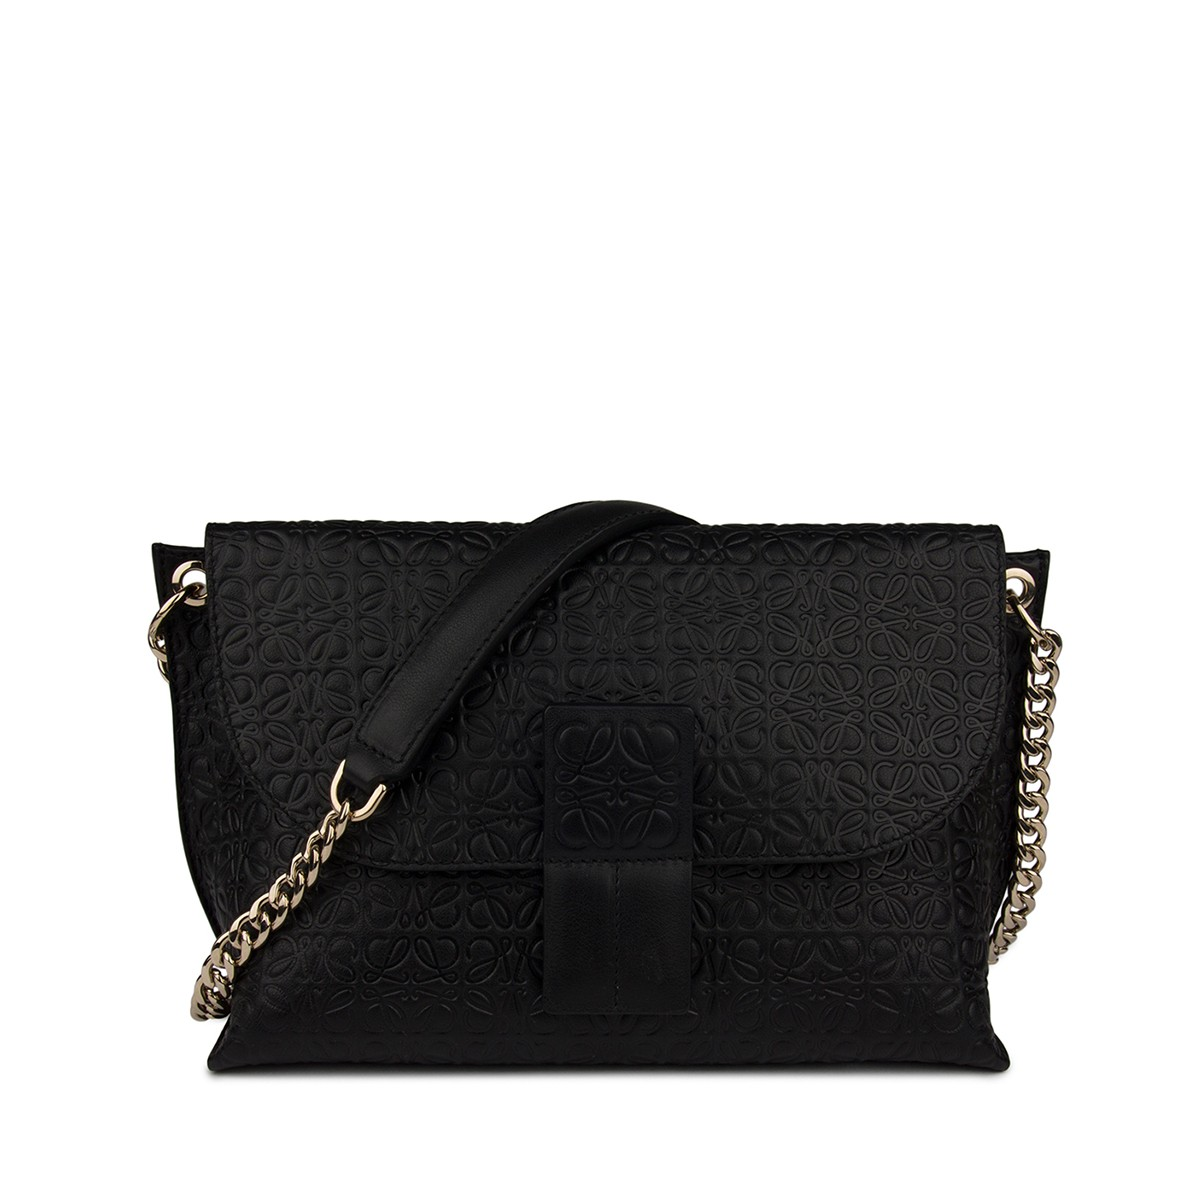 Avenue Bag in Black